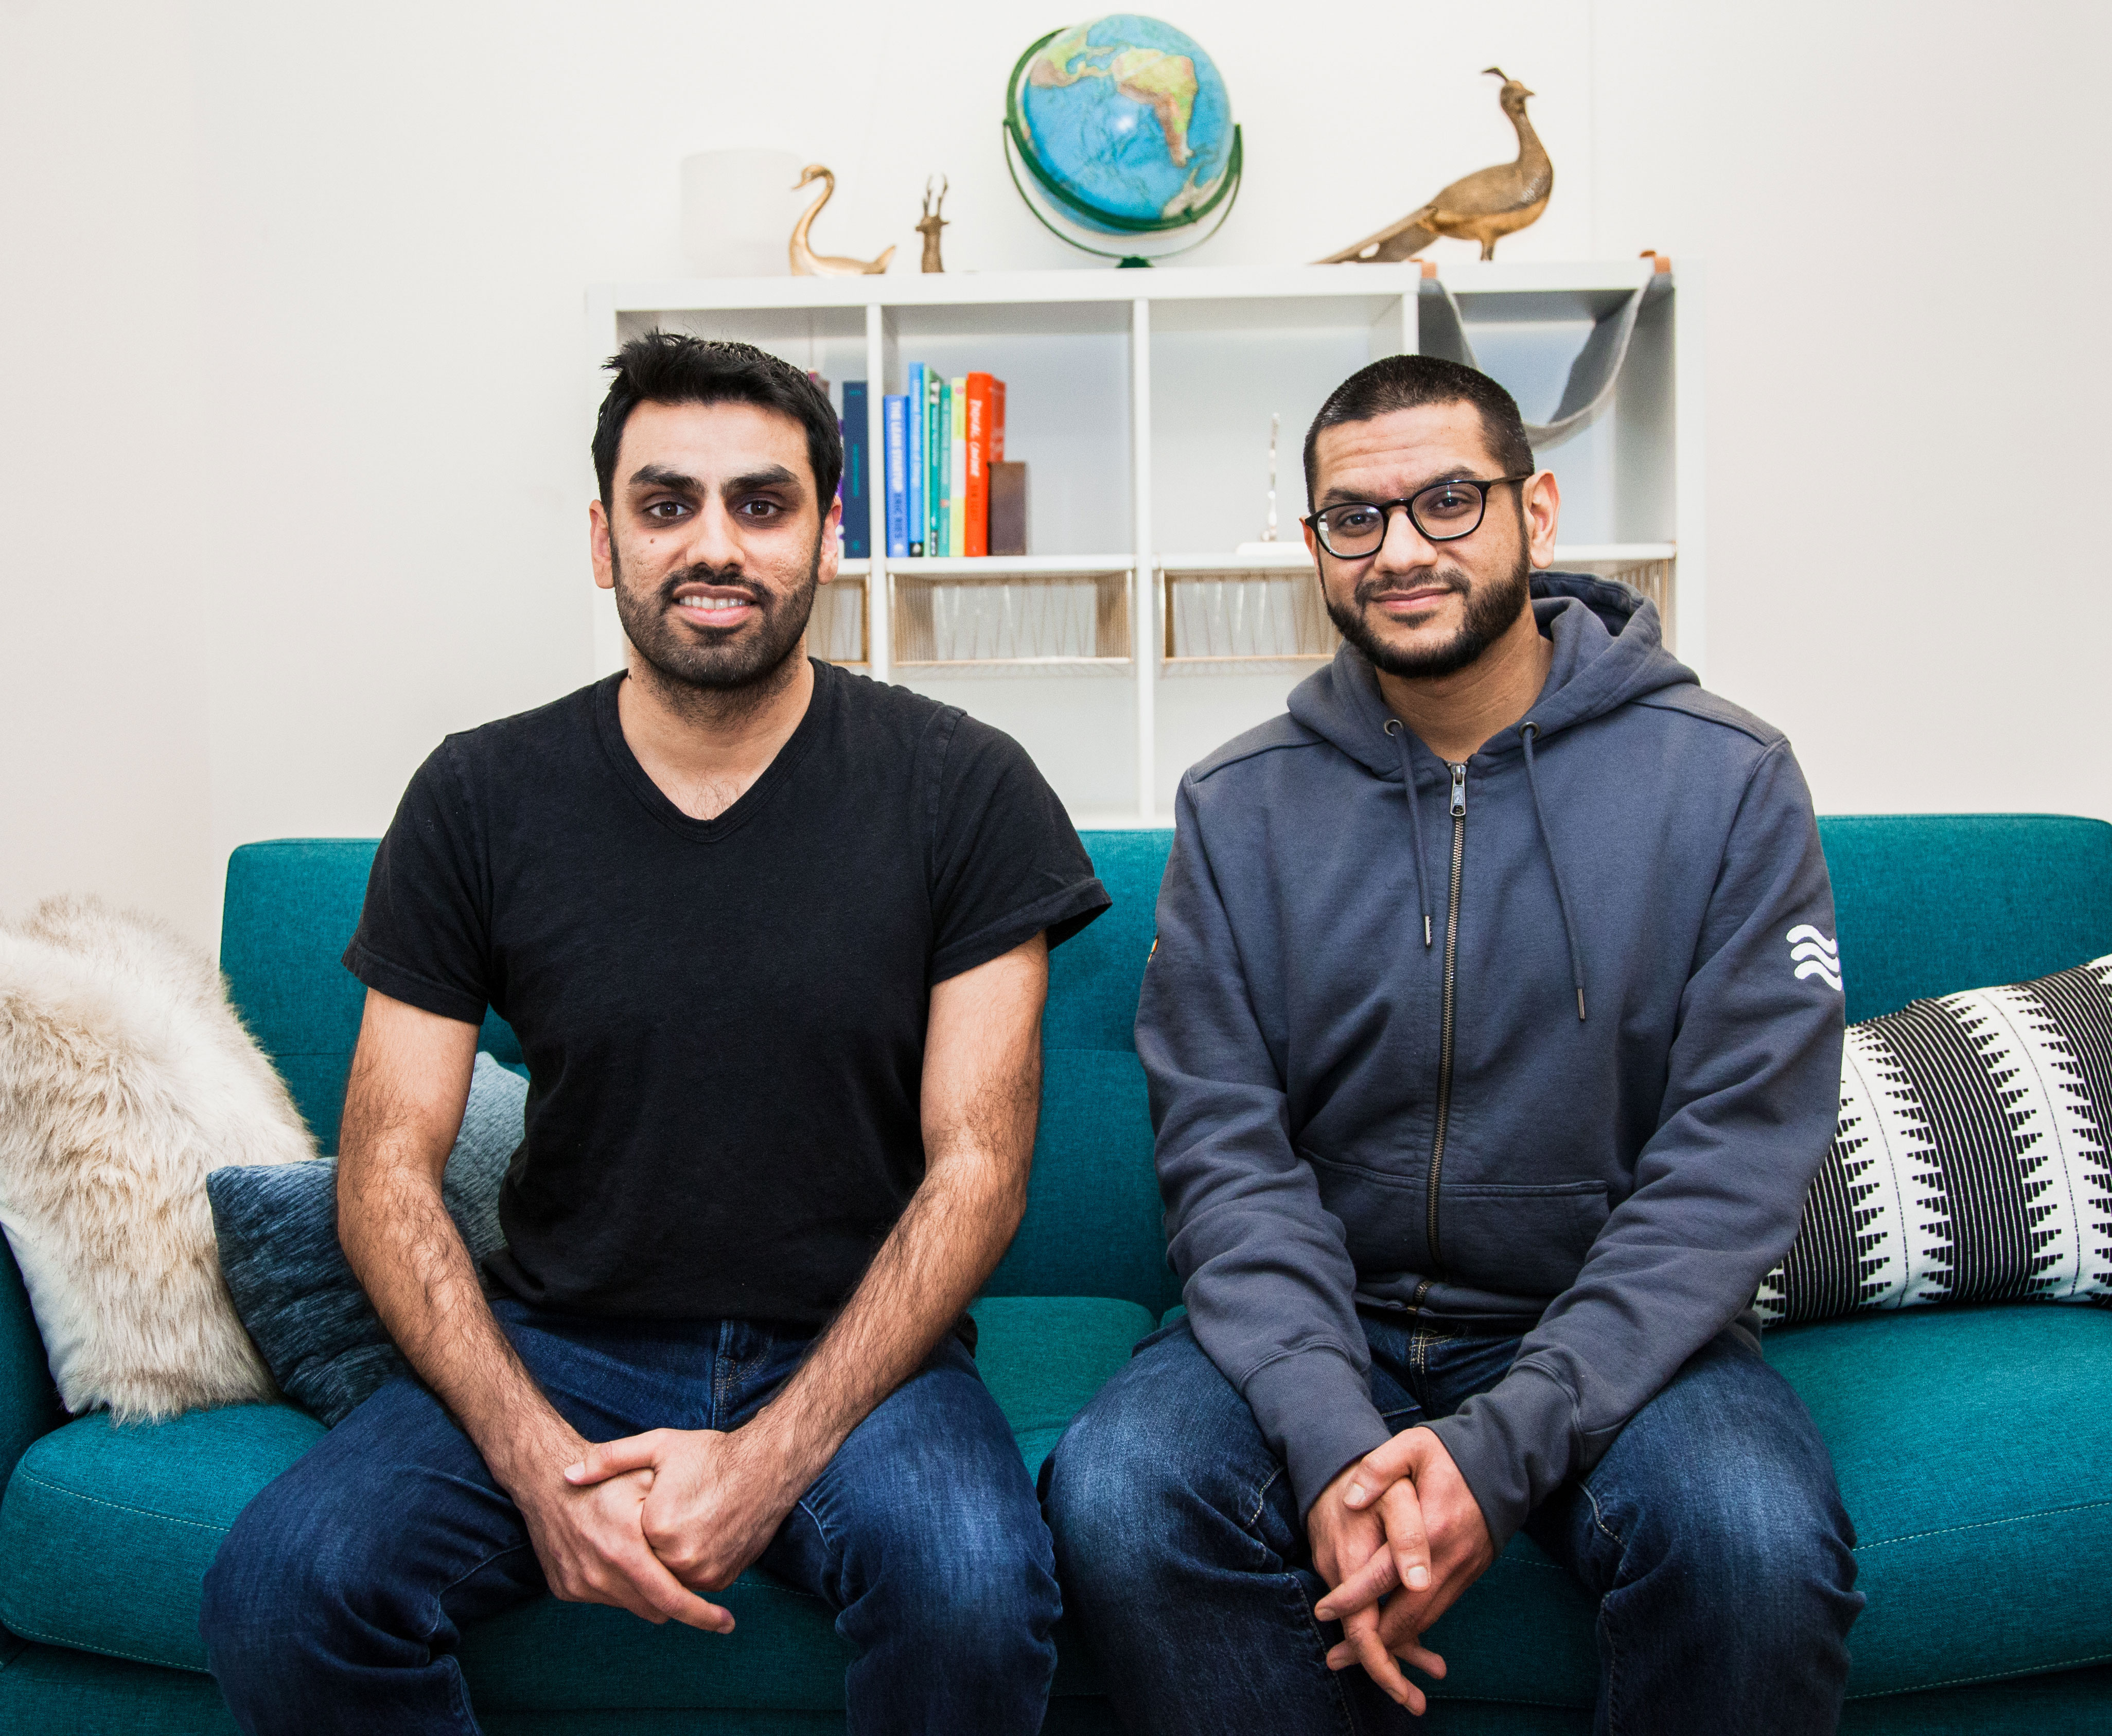 Polly Co-founders